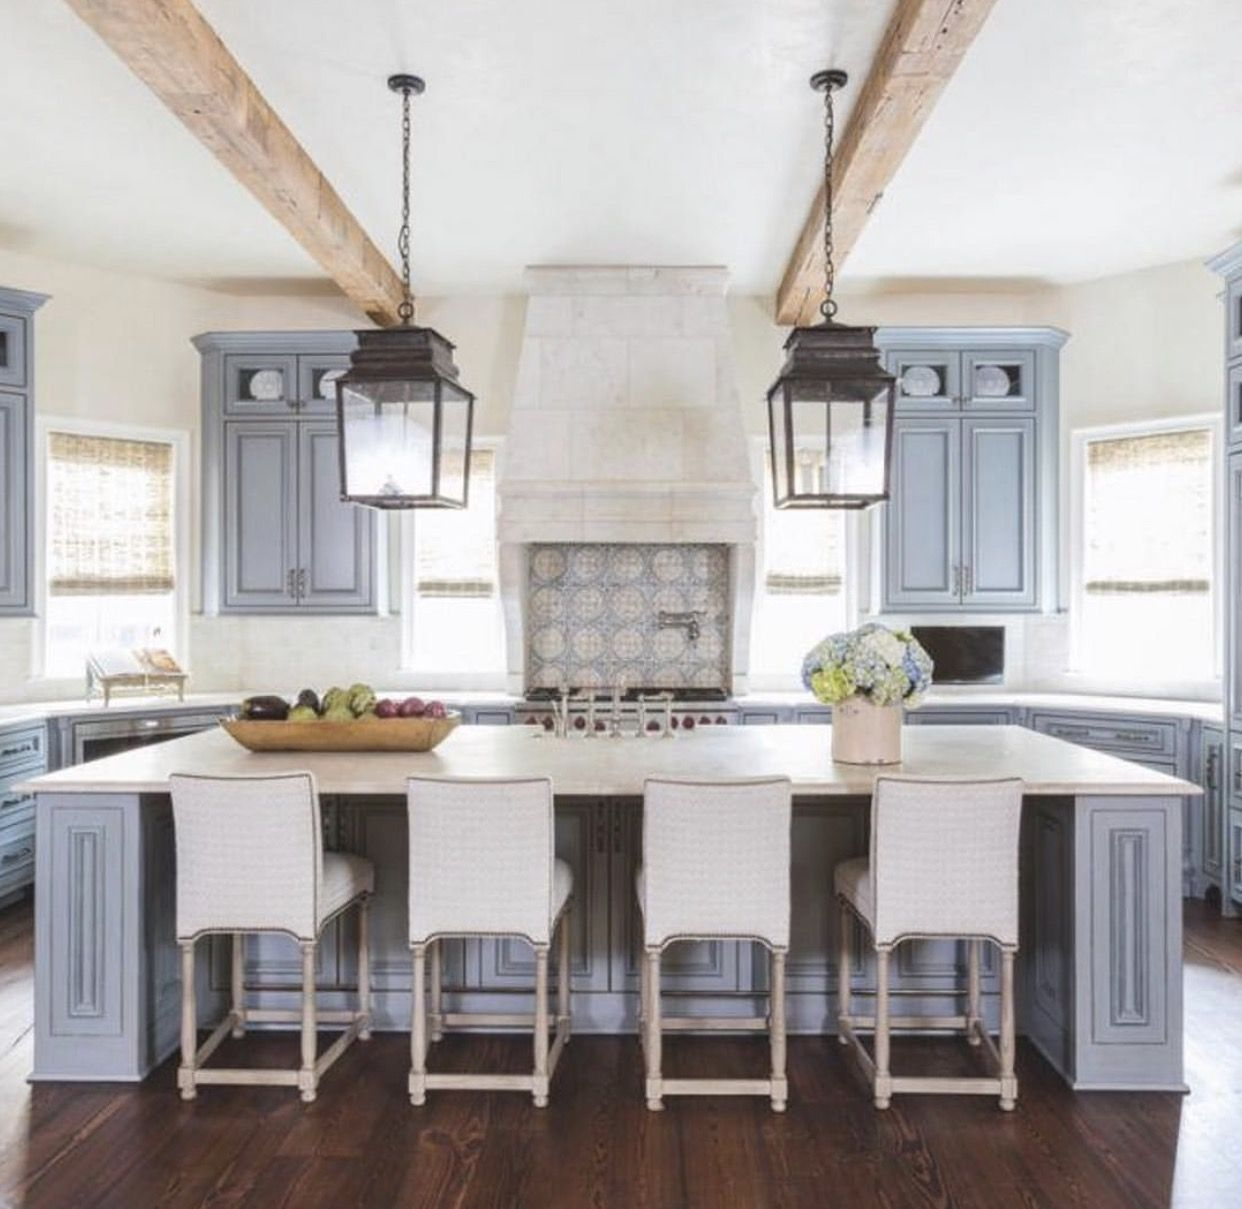 Best Pin By Erika Howell On Kitchens Kitchen Design Classy 400 x 300